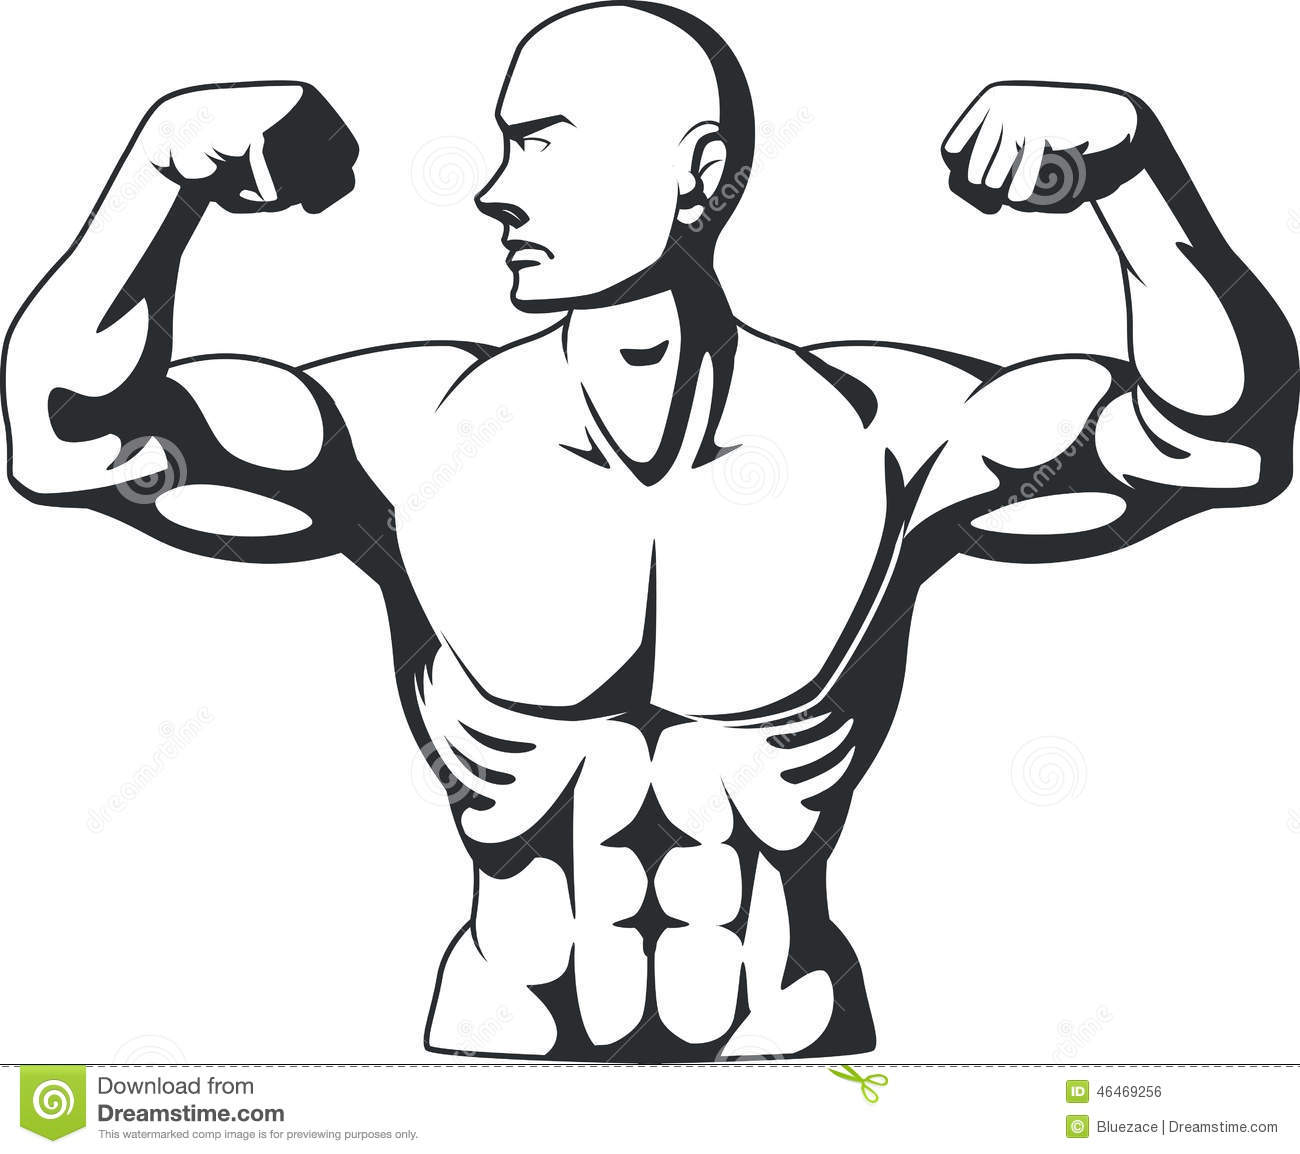 Persona 4 The Animation Wallpaper Silhouette Of Bodybuilder Flexing Muscles Stock Vector